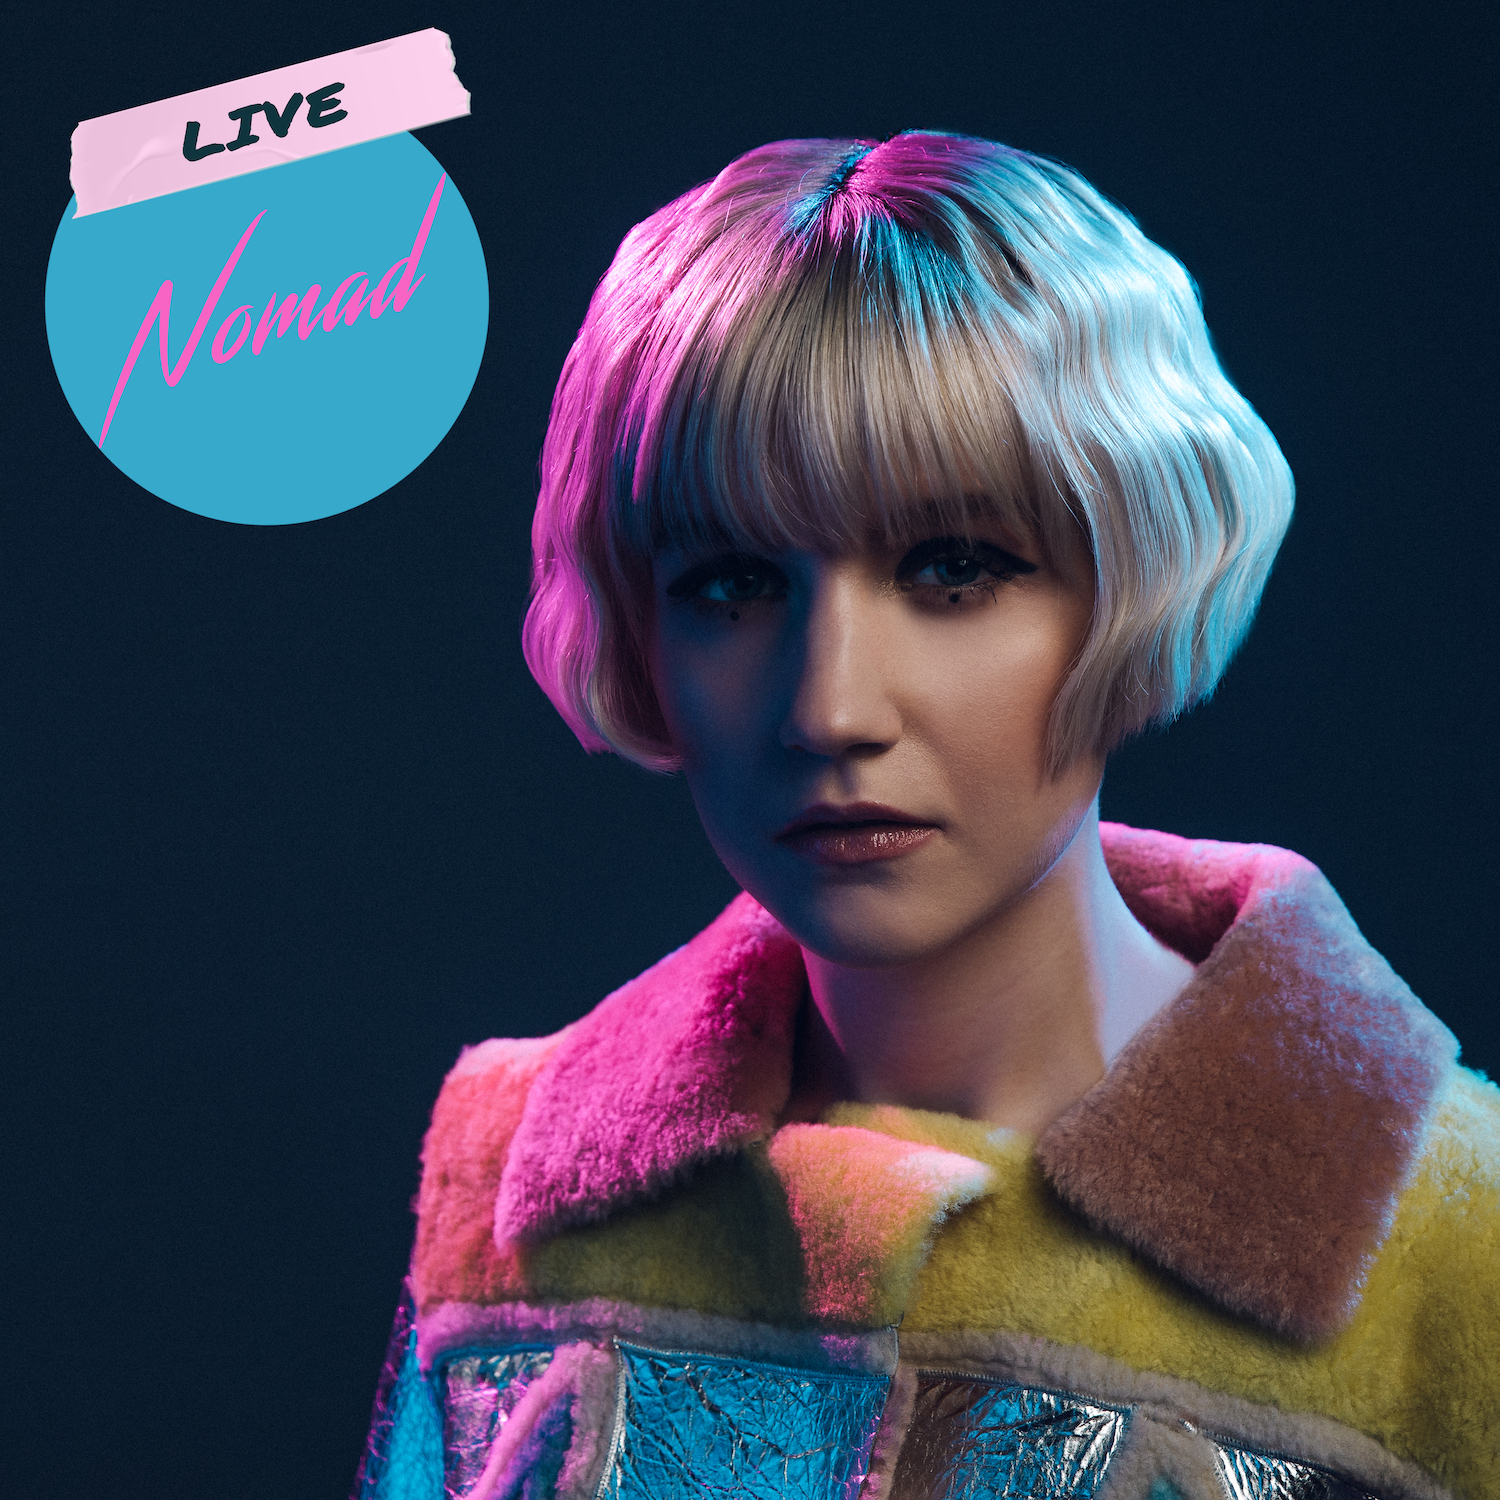 Anja_NOMAD_LIVE_cover_FINAL.png